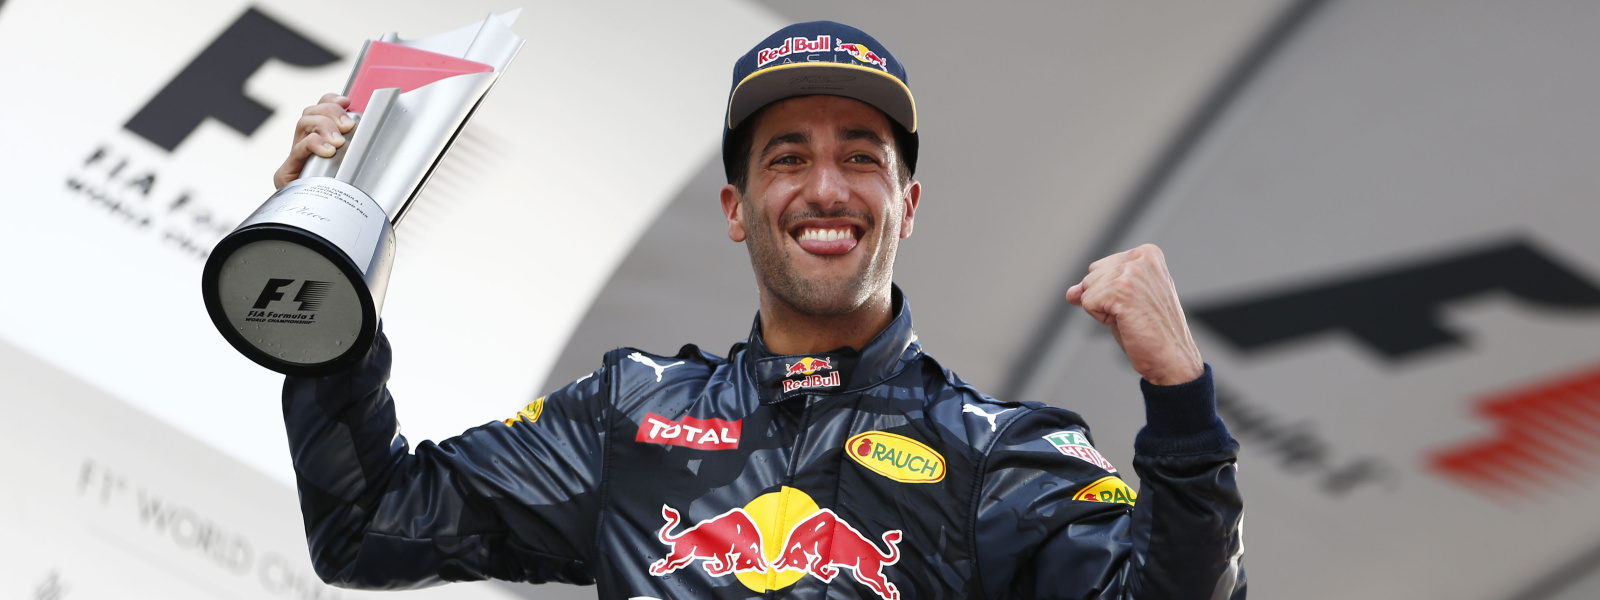 Motorsports: FIA Formula One World Championship 2016, Grand Prix of Malaysia,  #3 Daniel Ricciardo (AUS, Red Bull Racing),  *** Local Caption *** +++ www.hoch-zwei.net +++ copyright: HOCH ZWEI +++